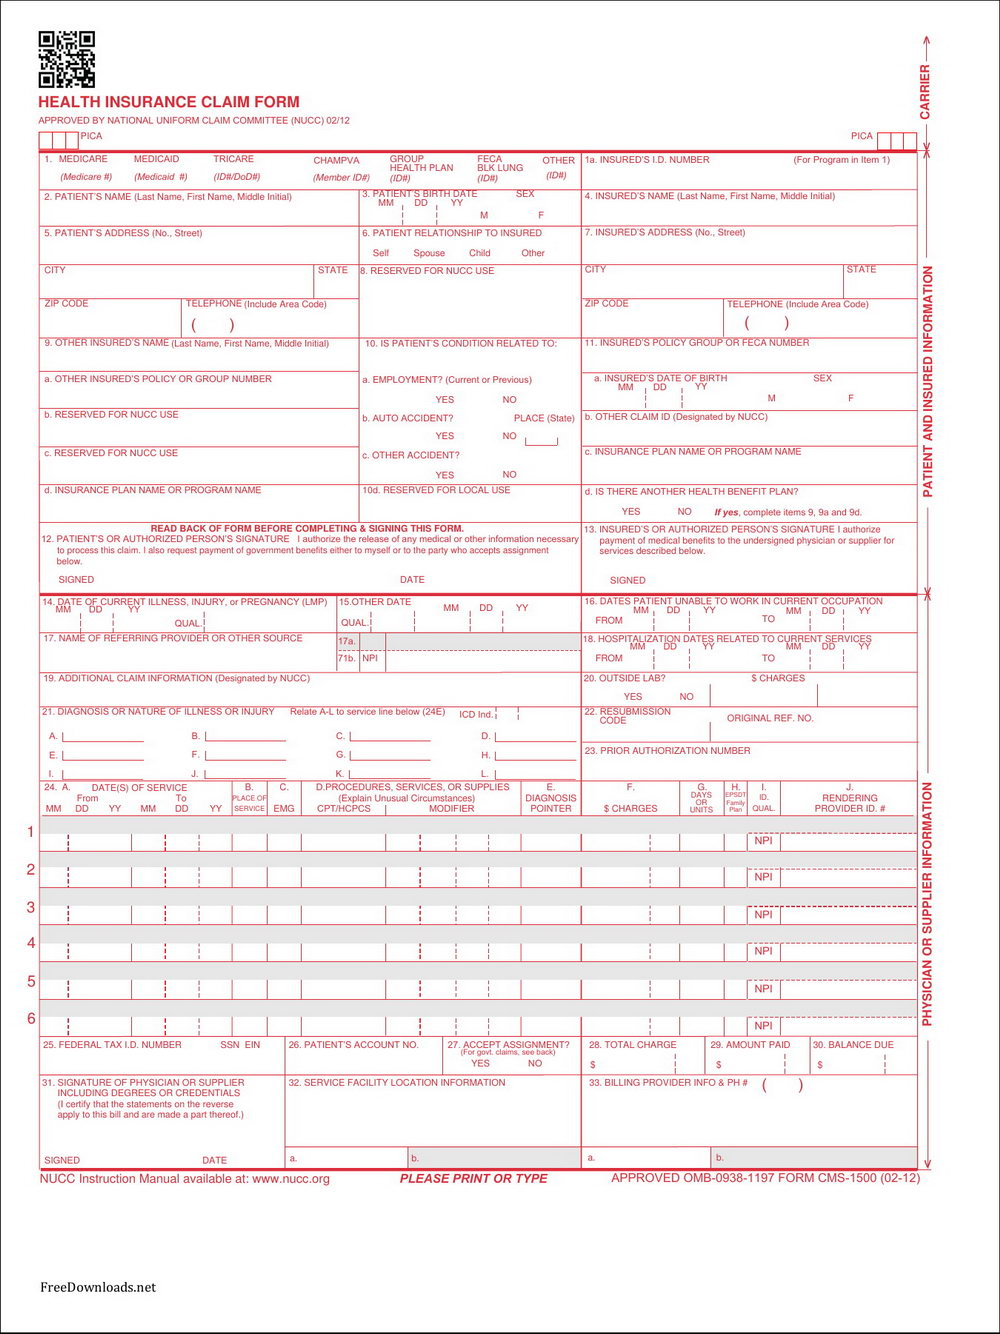 Downloadable Cms 1500 Claim Form